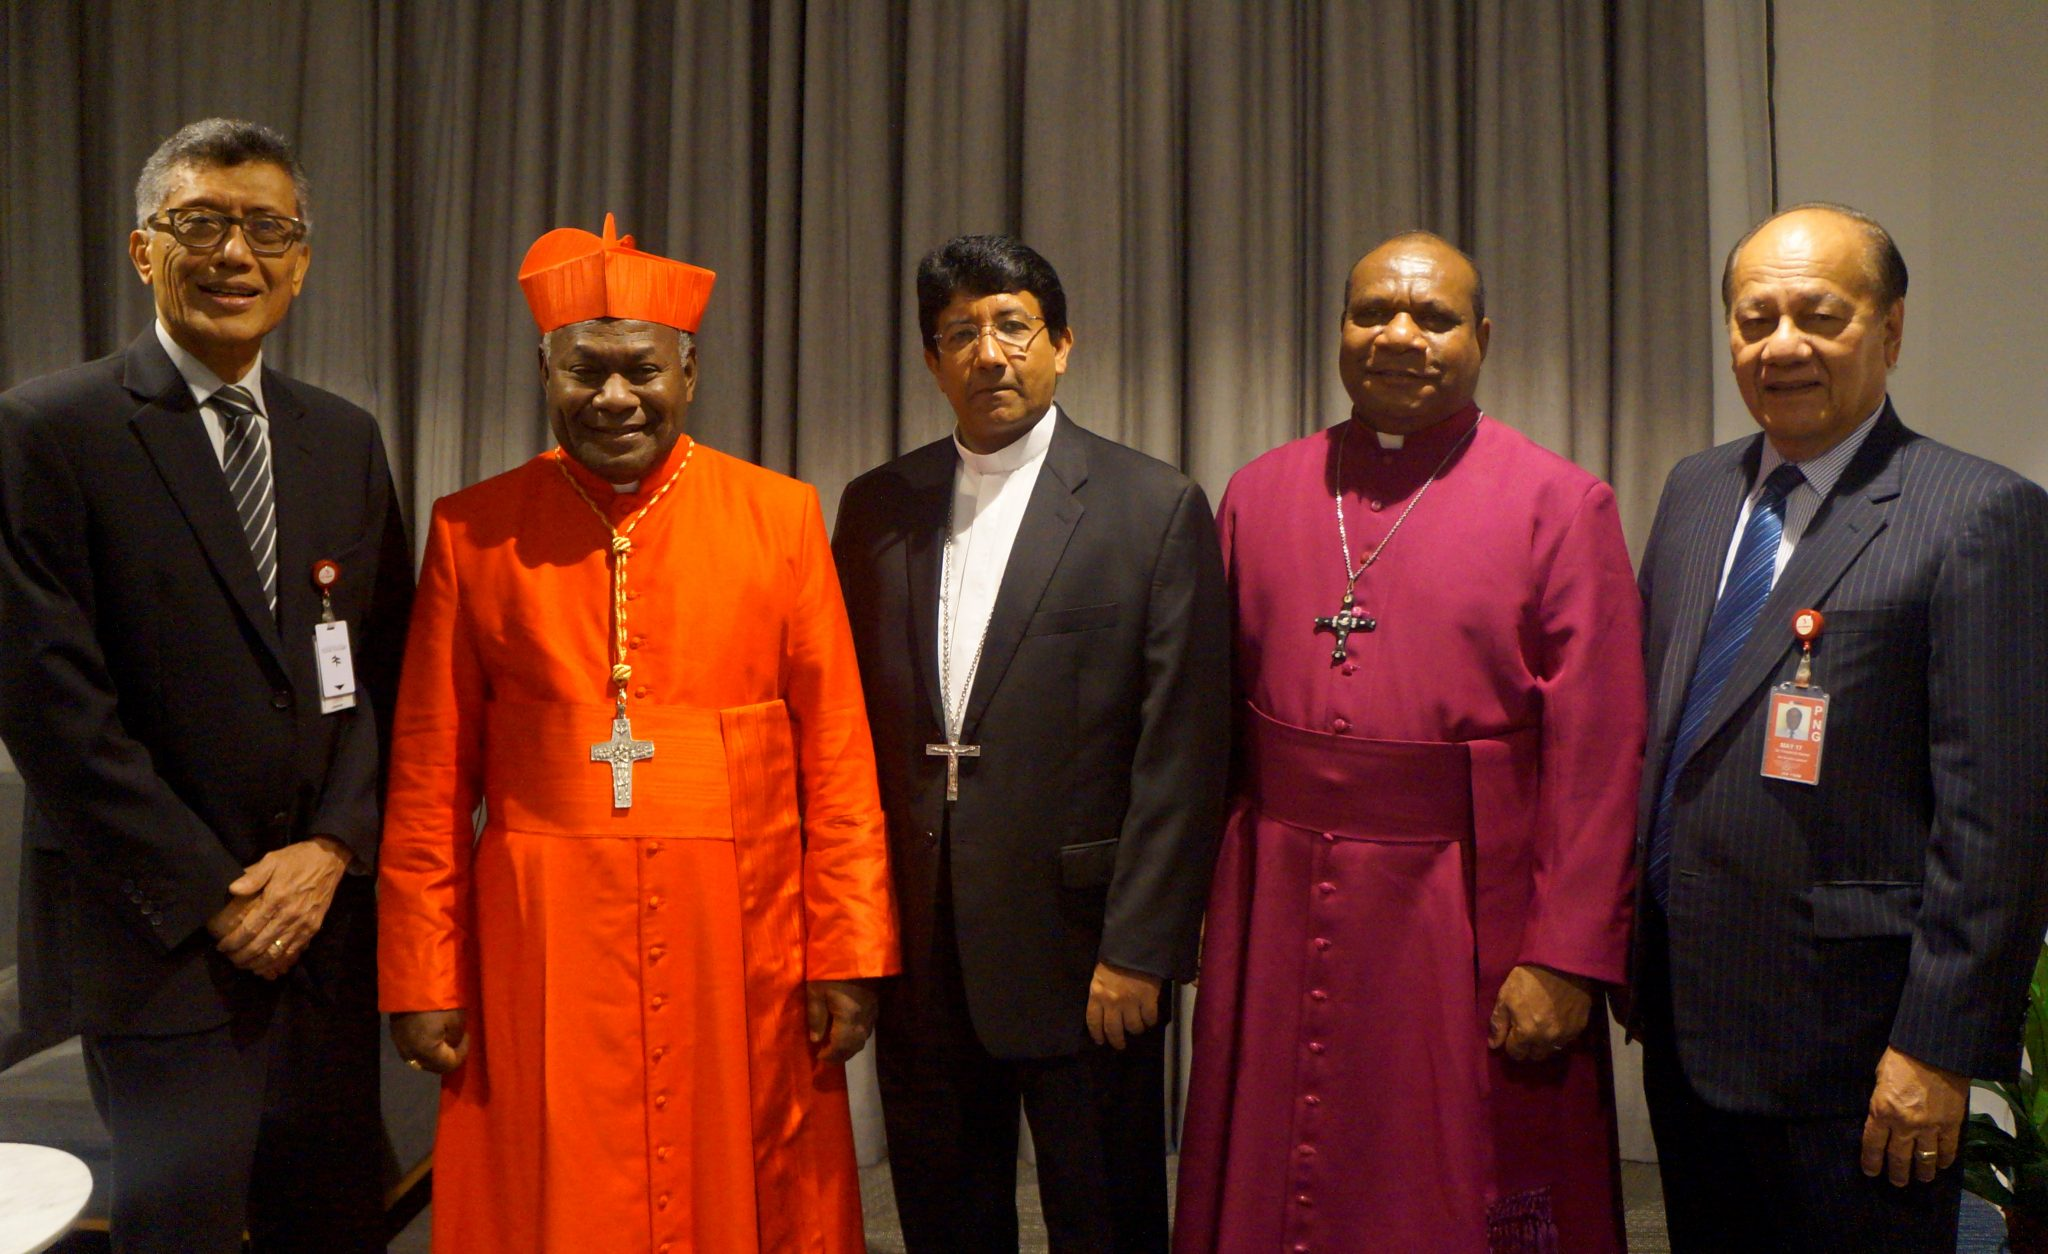 Cardinal's arrival in Port Moresby